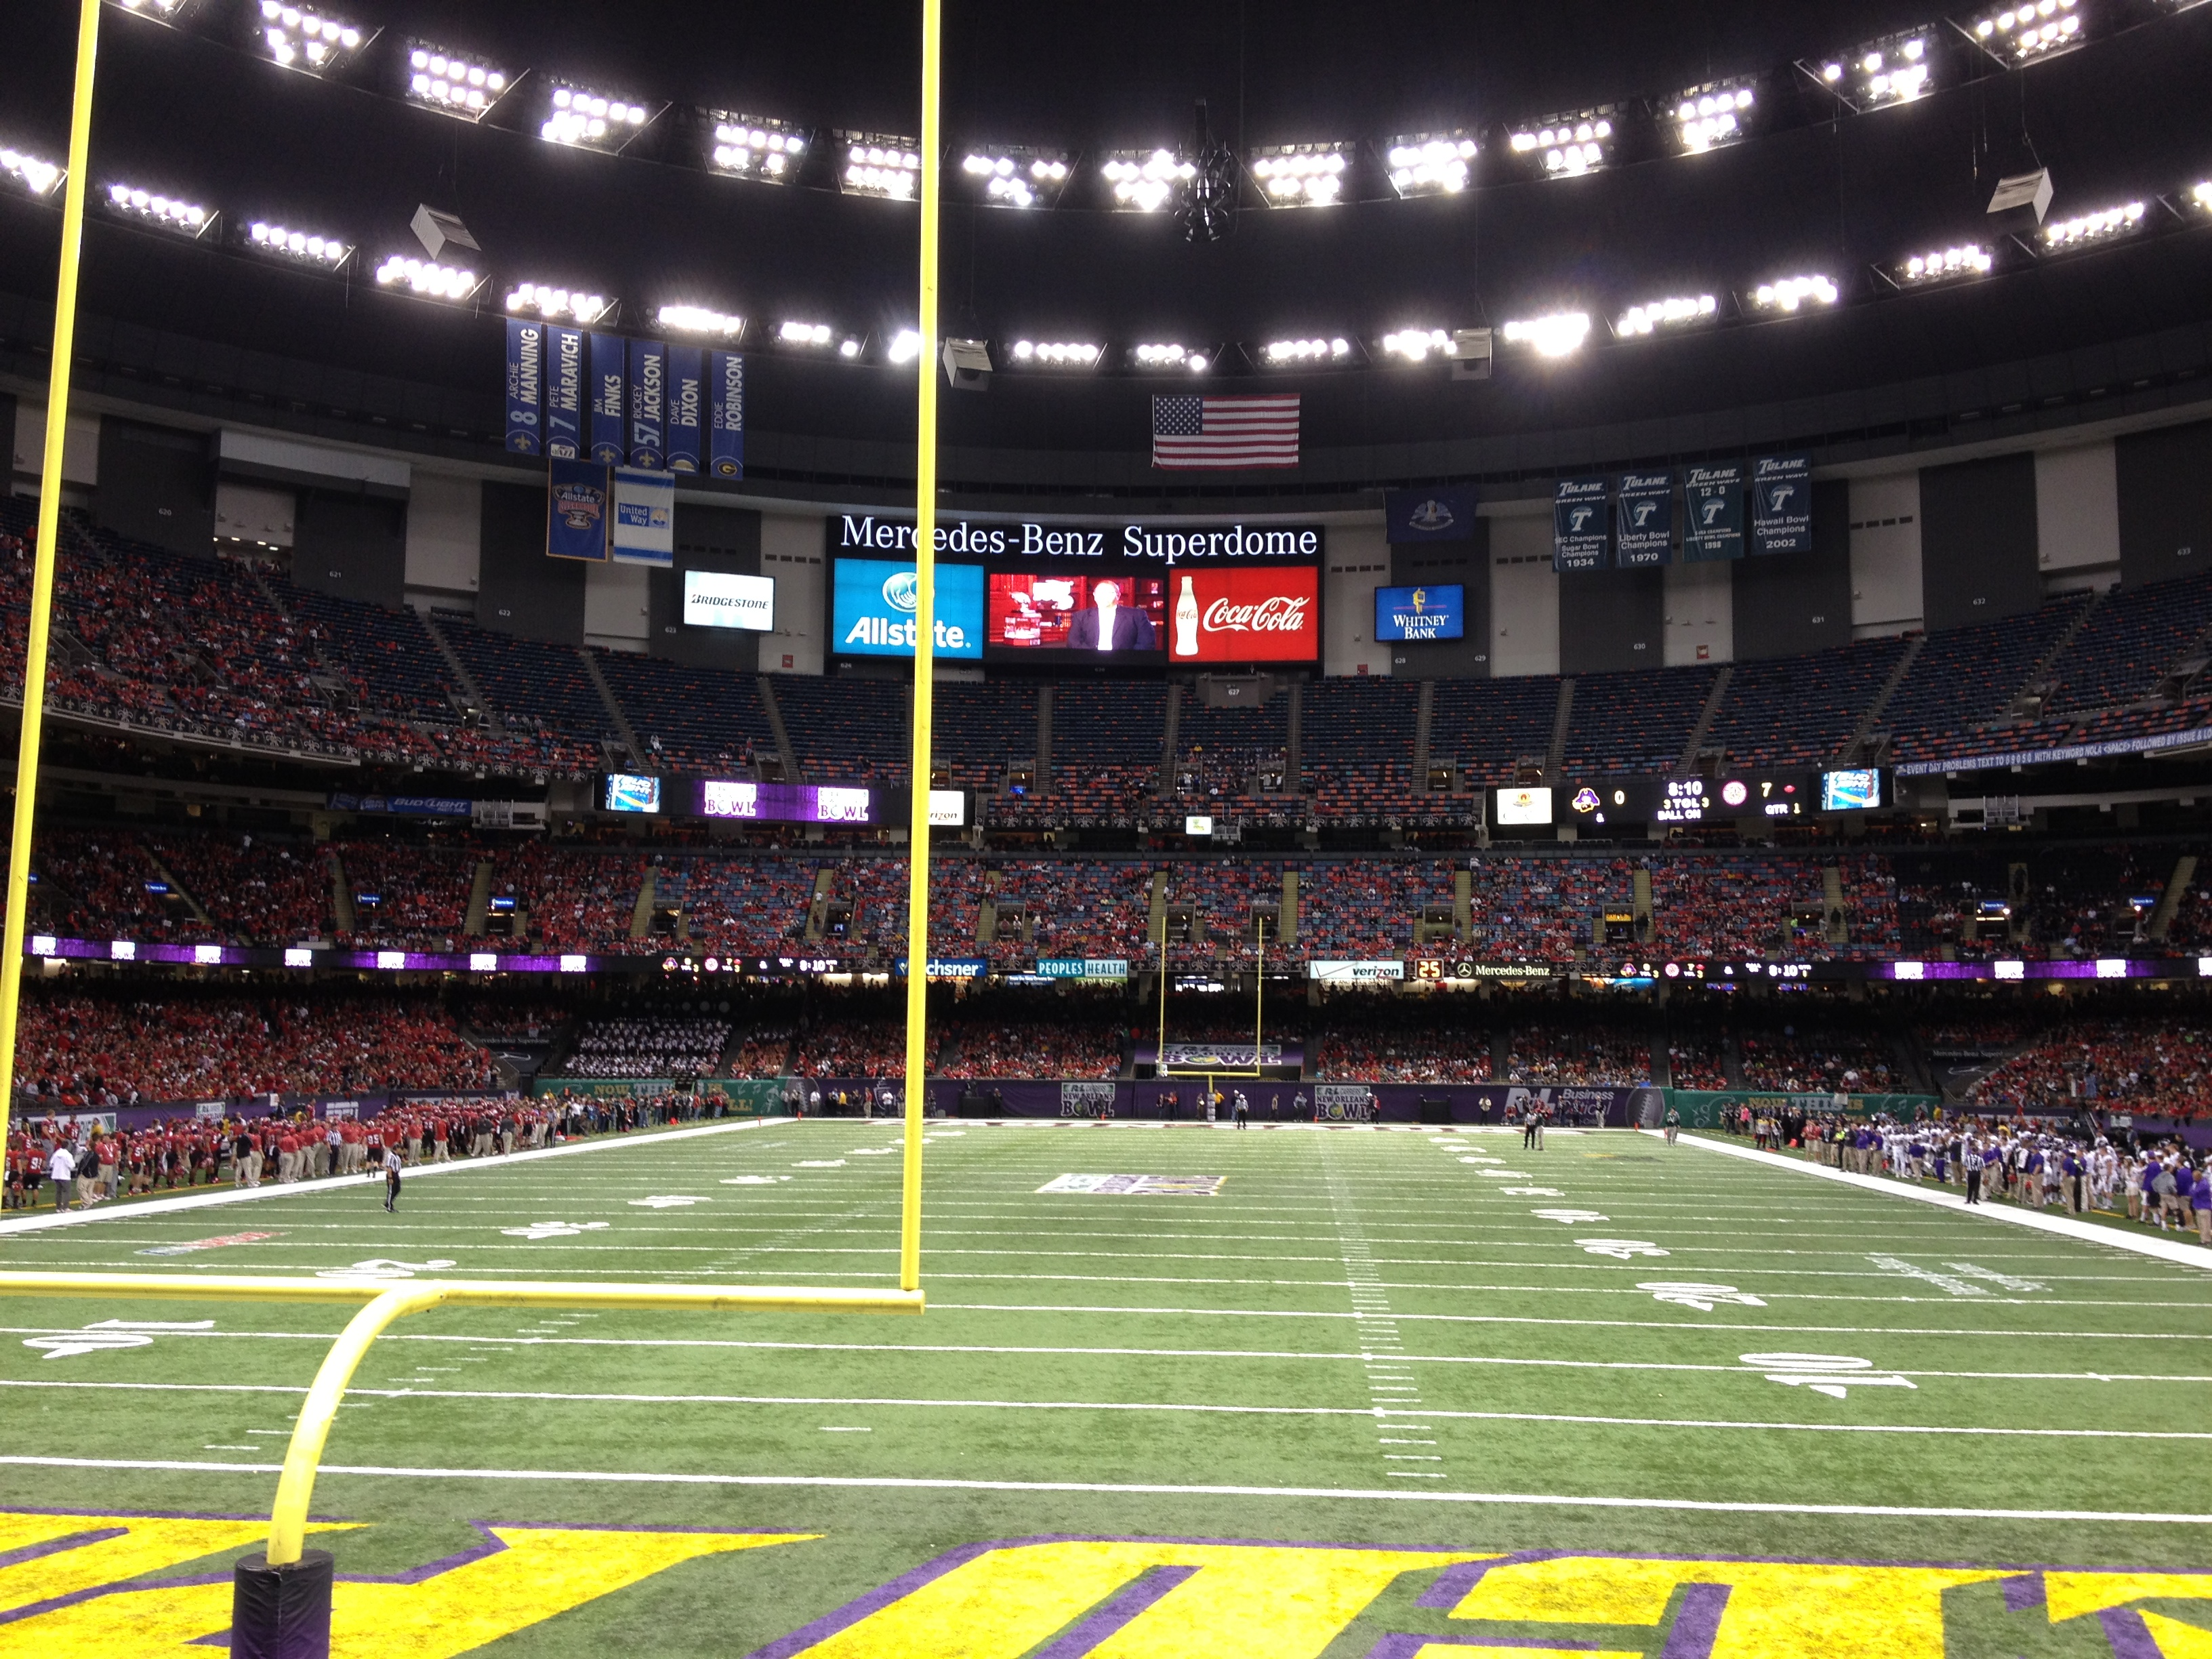 mercedes-benz superdome – new orleans bowl | stadium journey